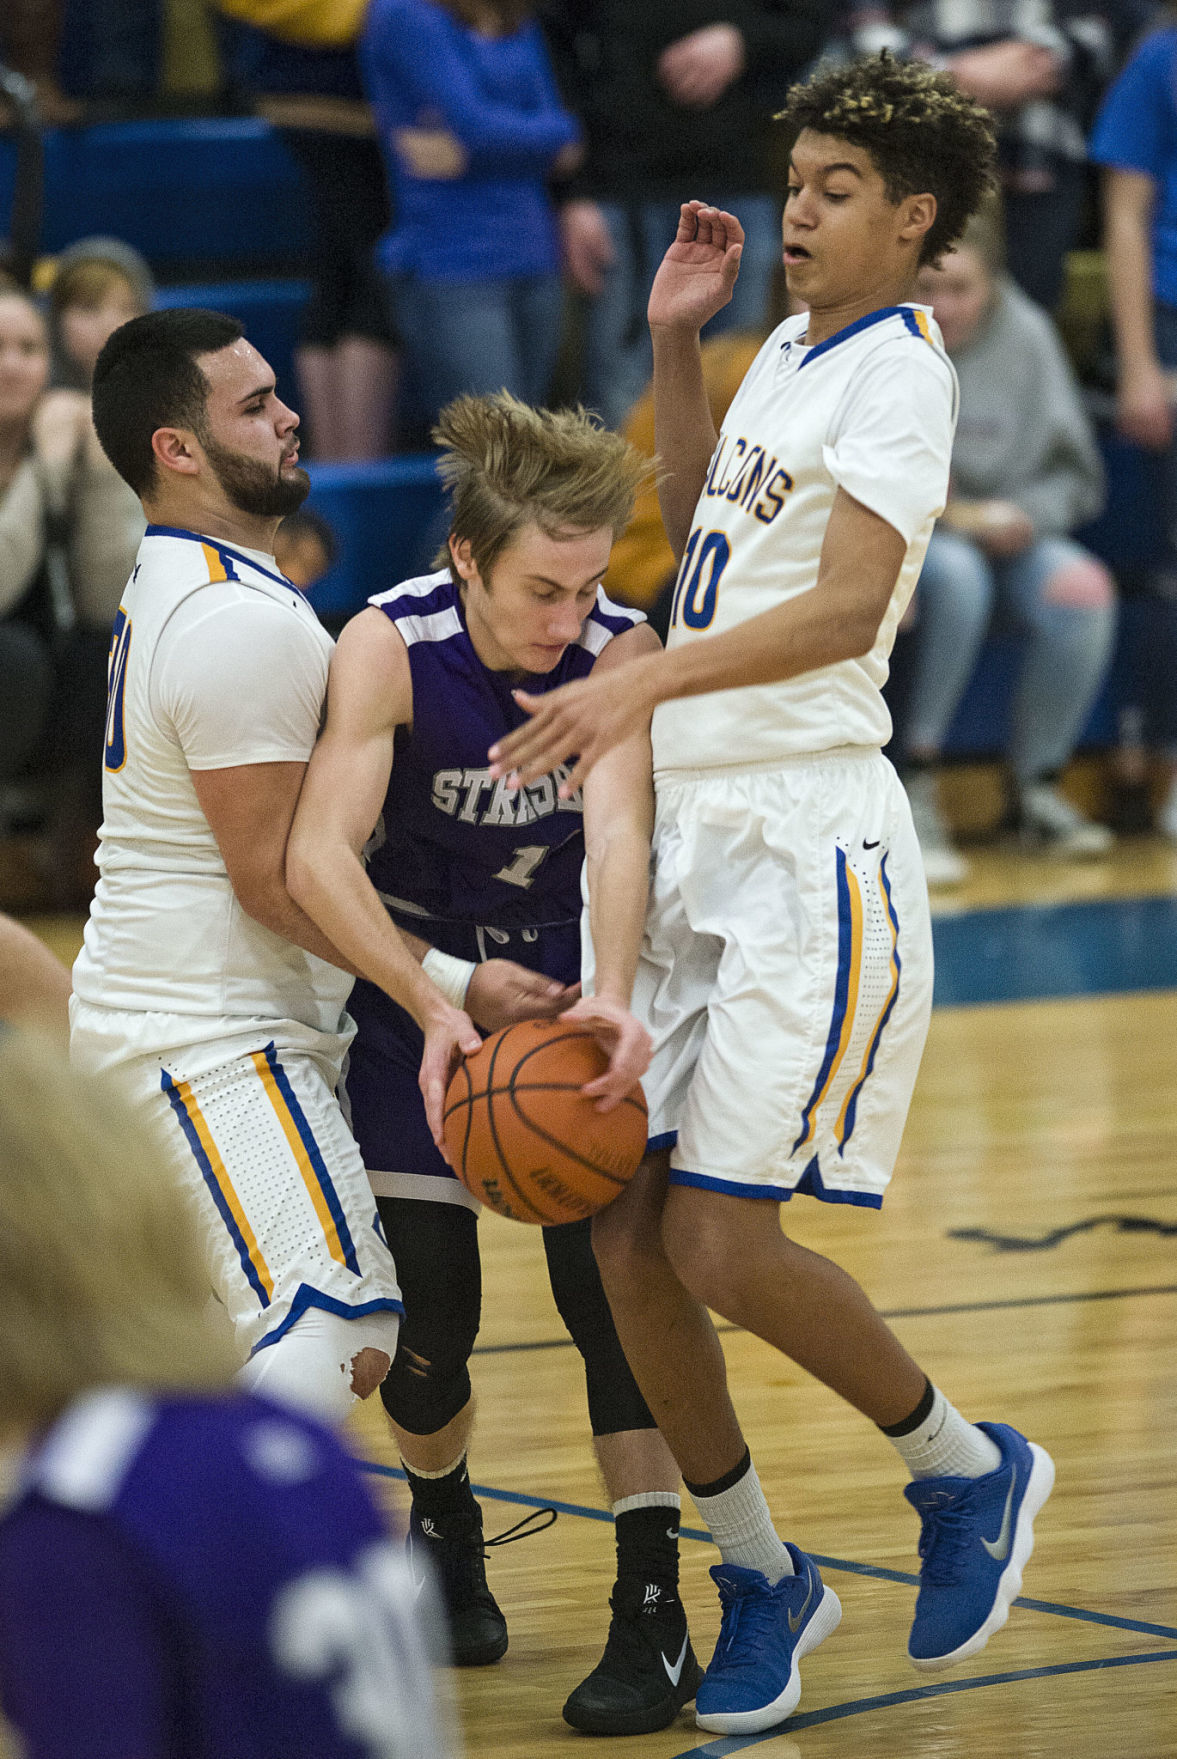 Year in review sports 2018 - Central boys basketball